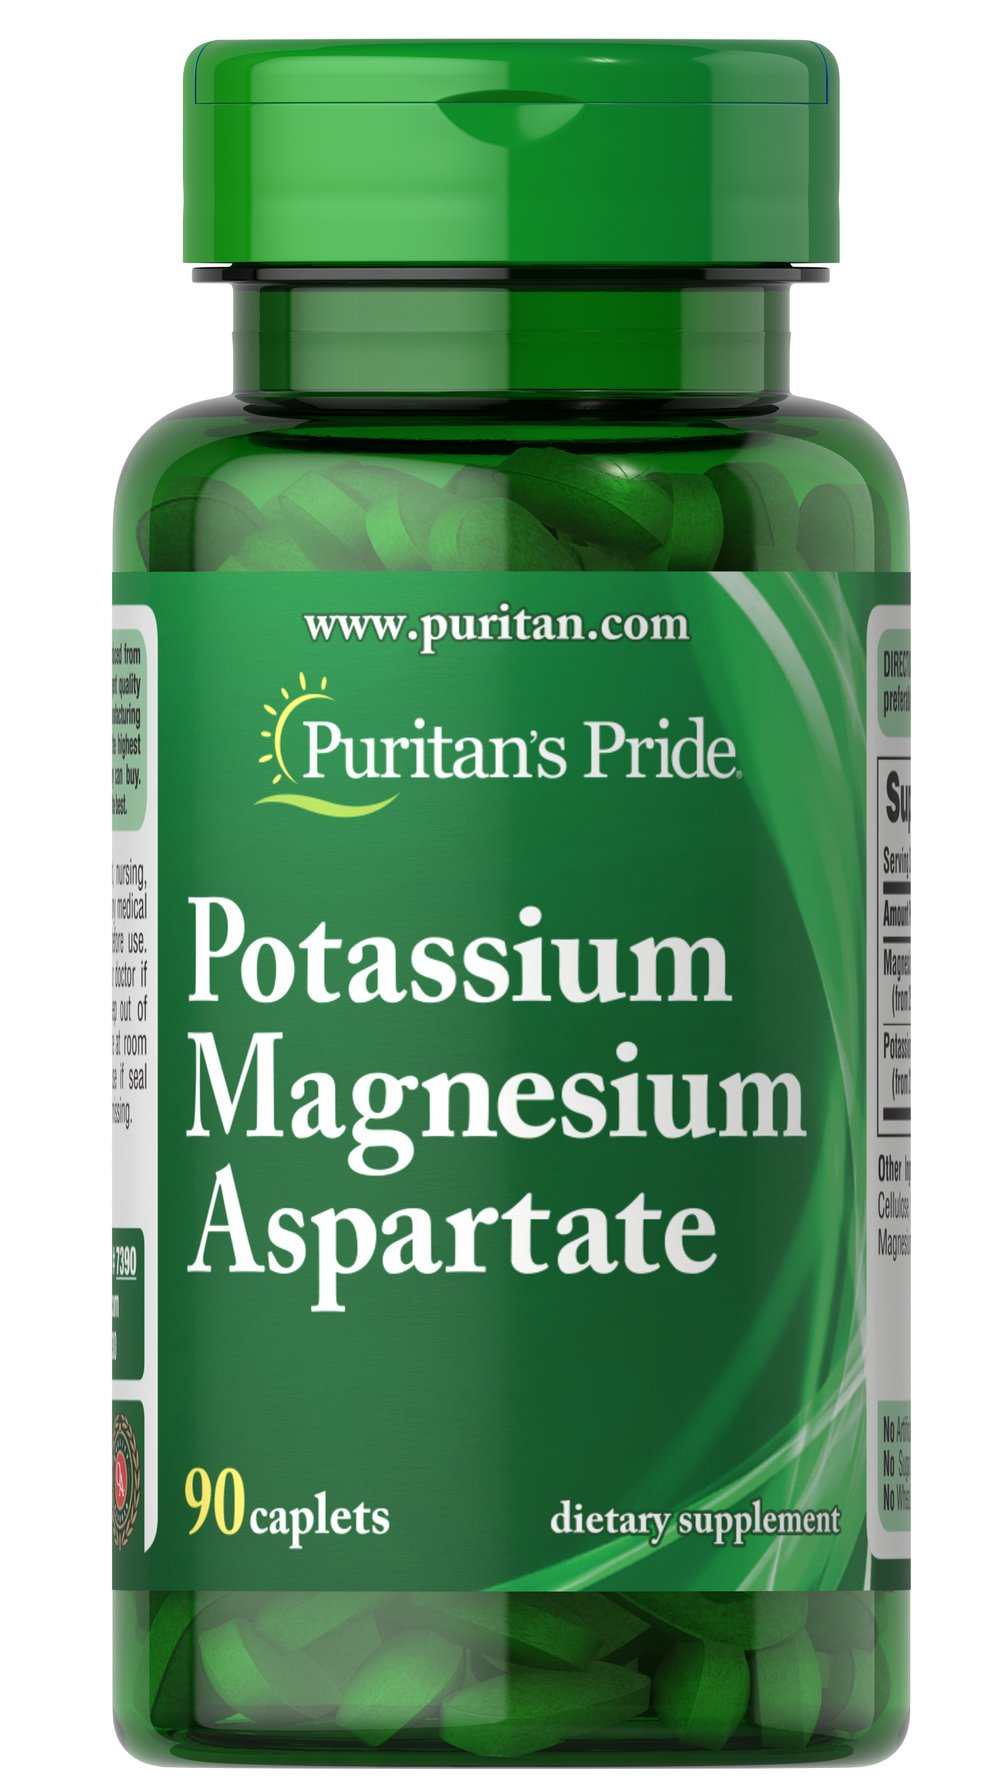 Potassium Magnesium Aspartate <p>Each tablet contains (250 mg) potassium aspartate equivalent to (50 mg) elemental potassium and (250 mg) magnesium aspartate equivalent to (50 mg) elemental magnesium.</p> 90 Caplets 50 mg $11.99